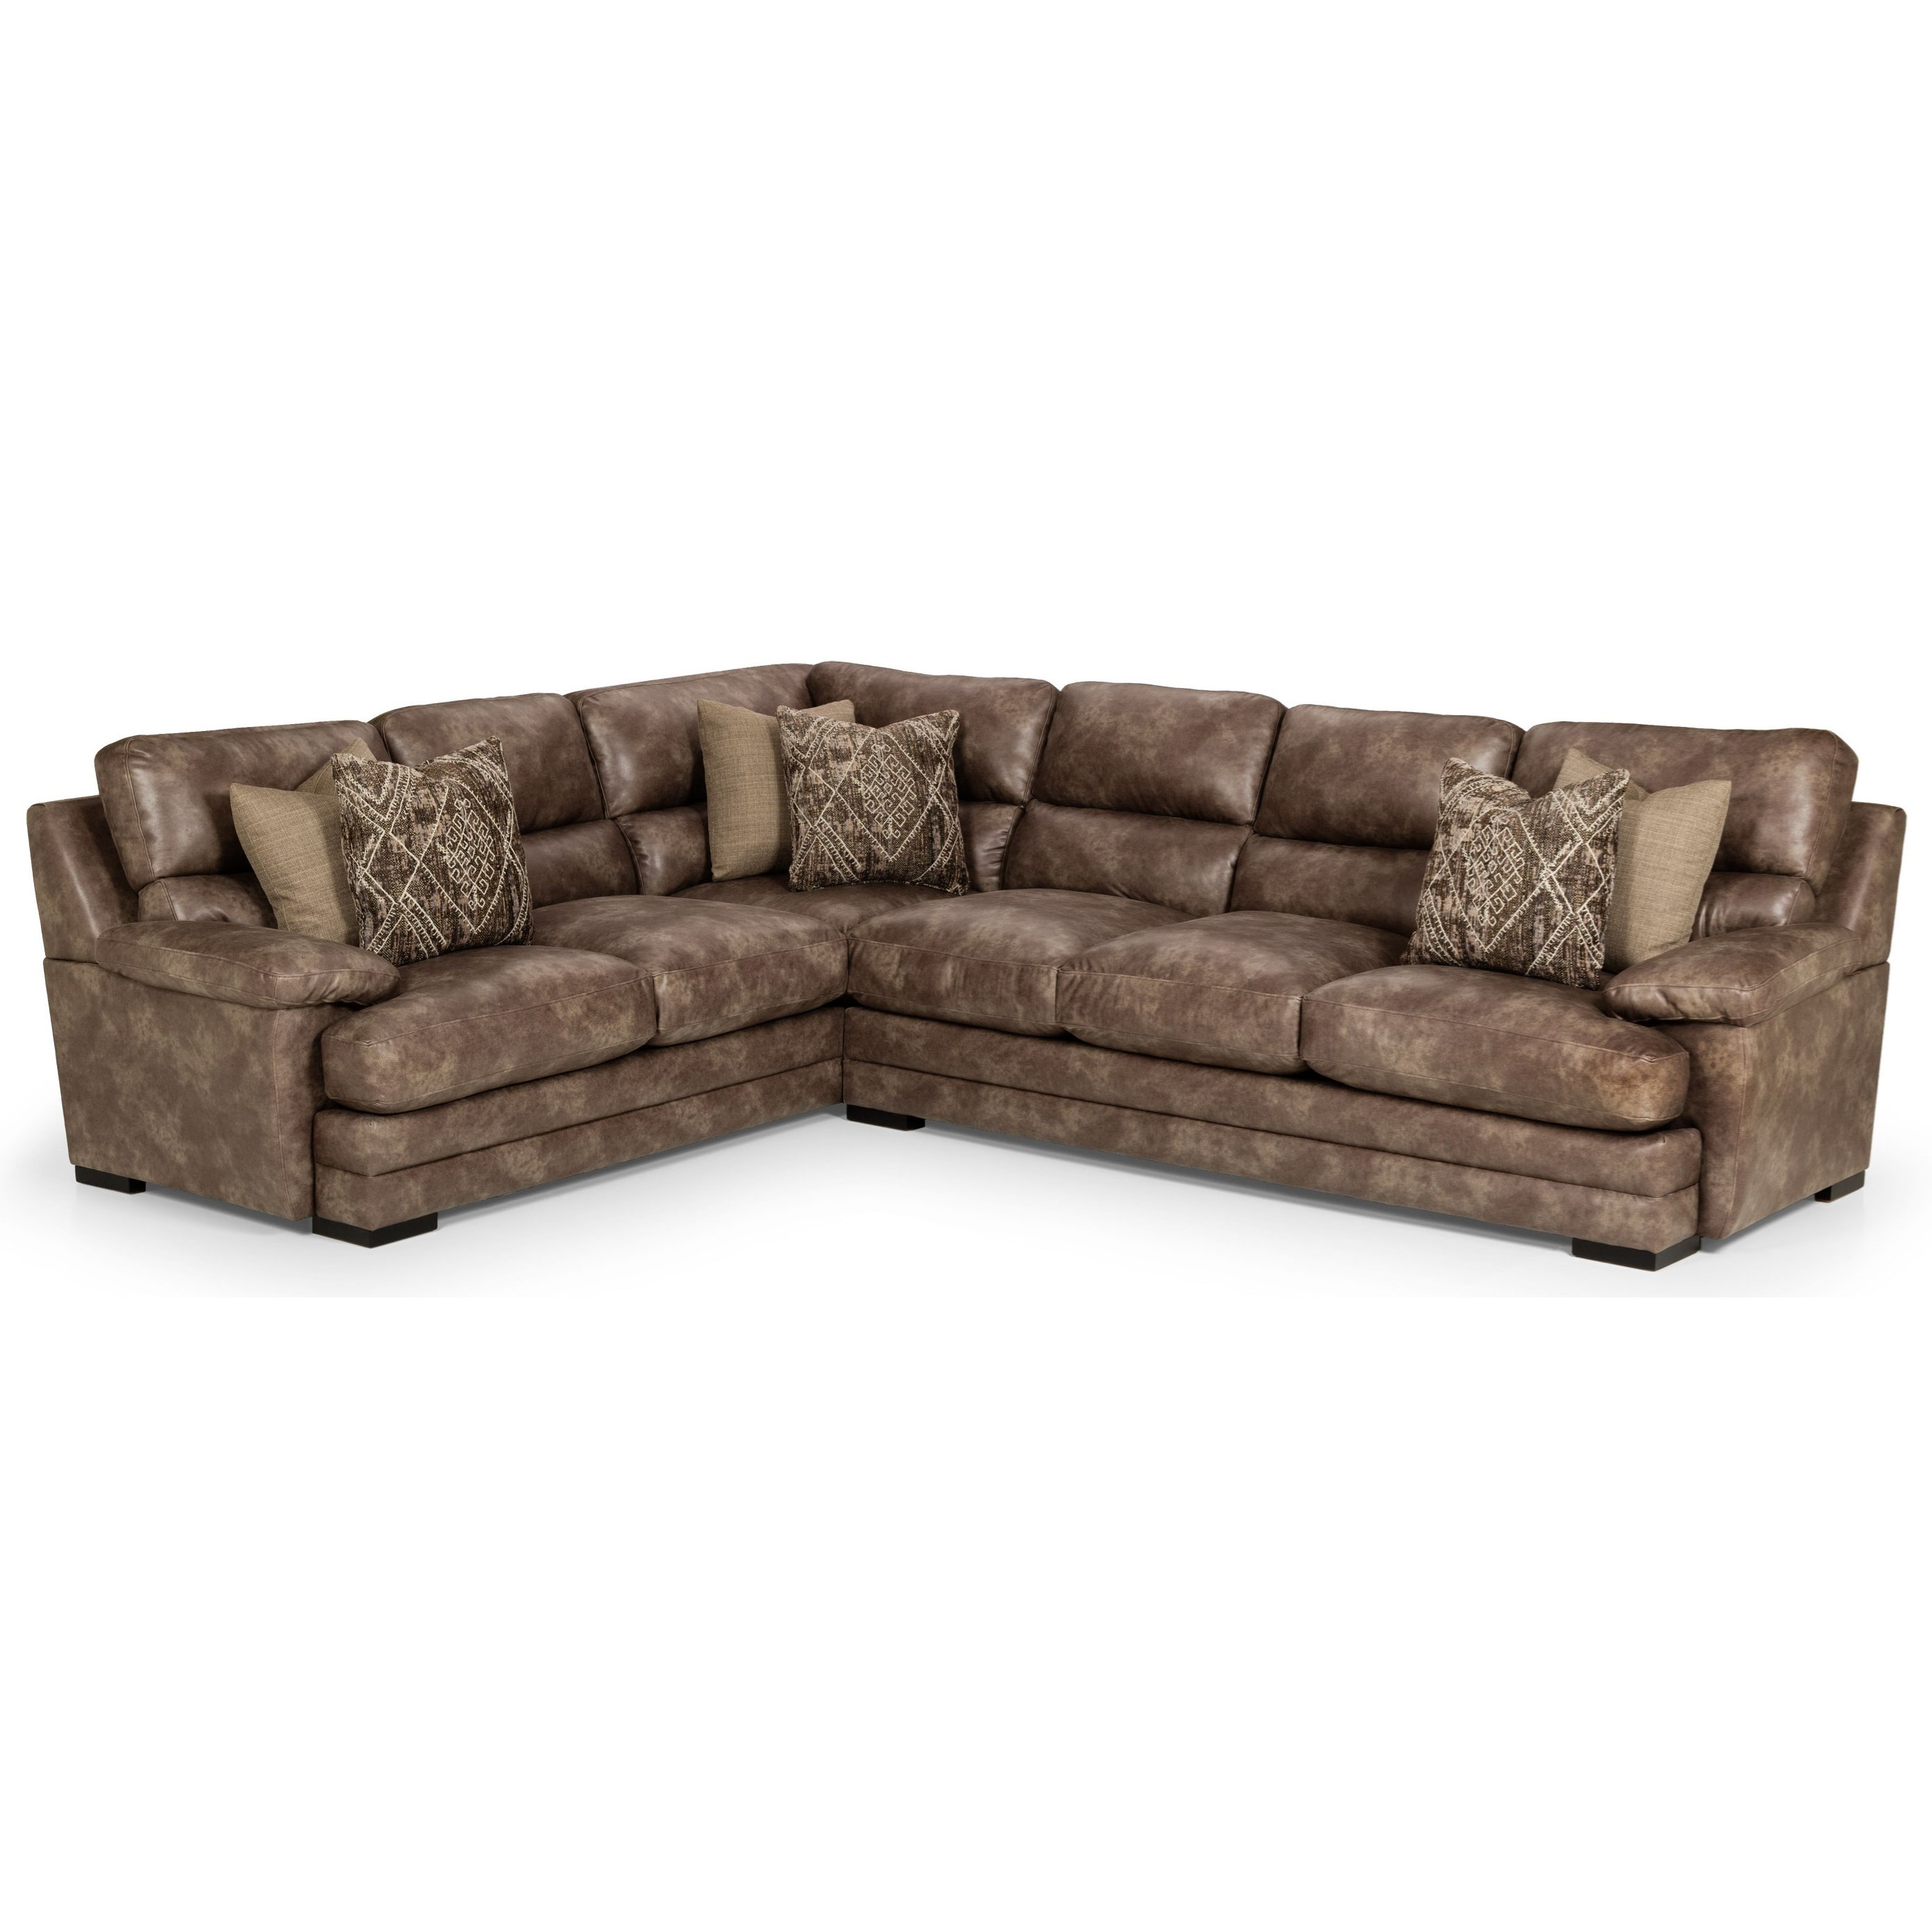 Stanton 9 Casual 9 Piece Sectional Sofa with Blendown Cushions